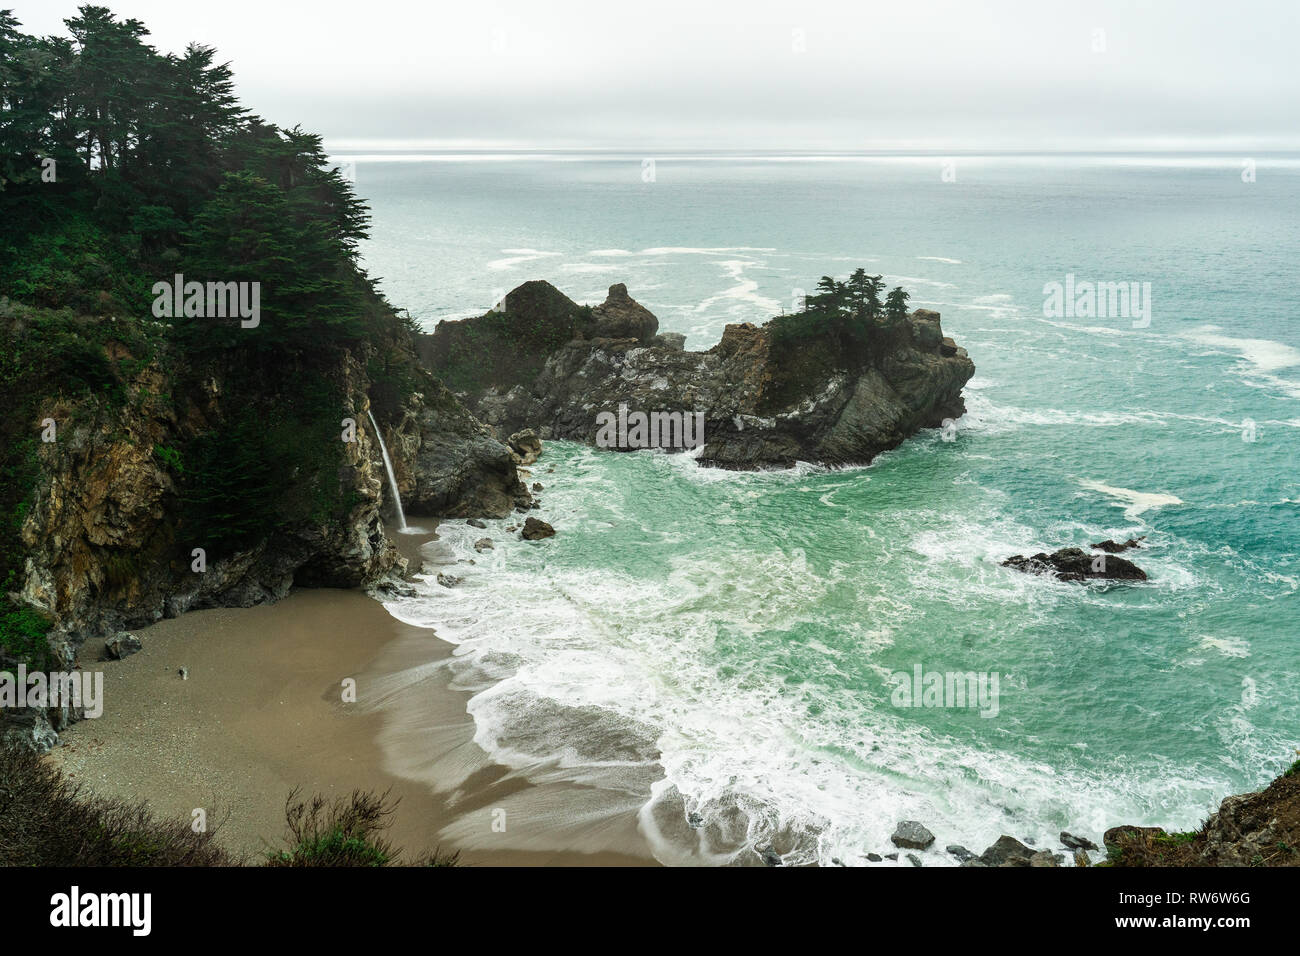 Pch Stock Photos & Pch Stock Images - Alamy